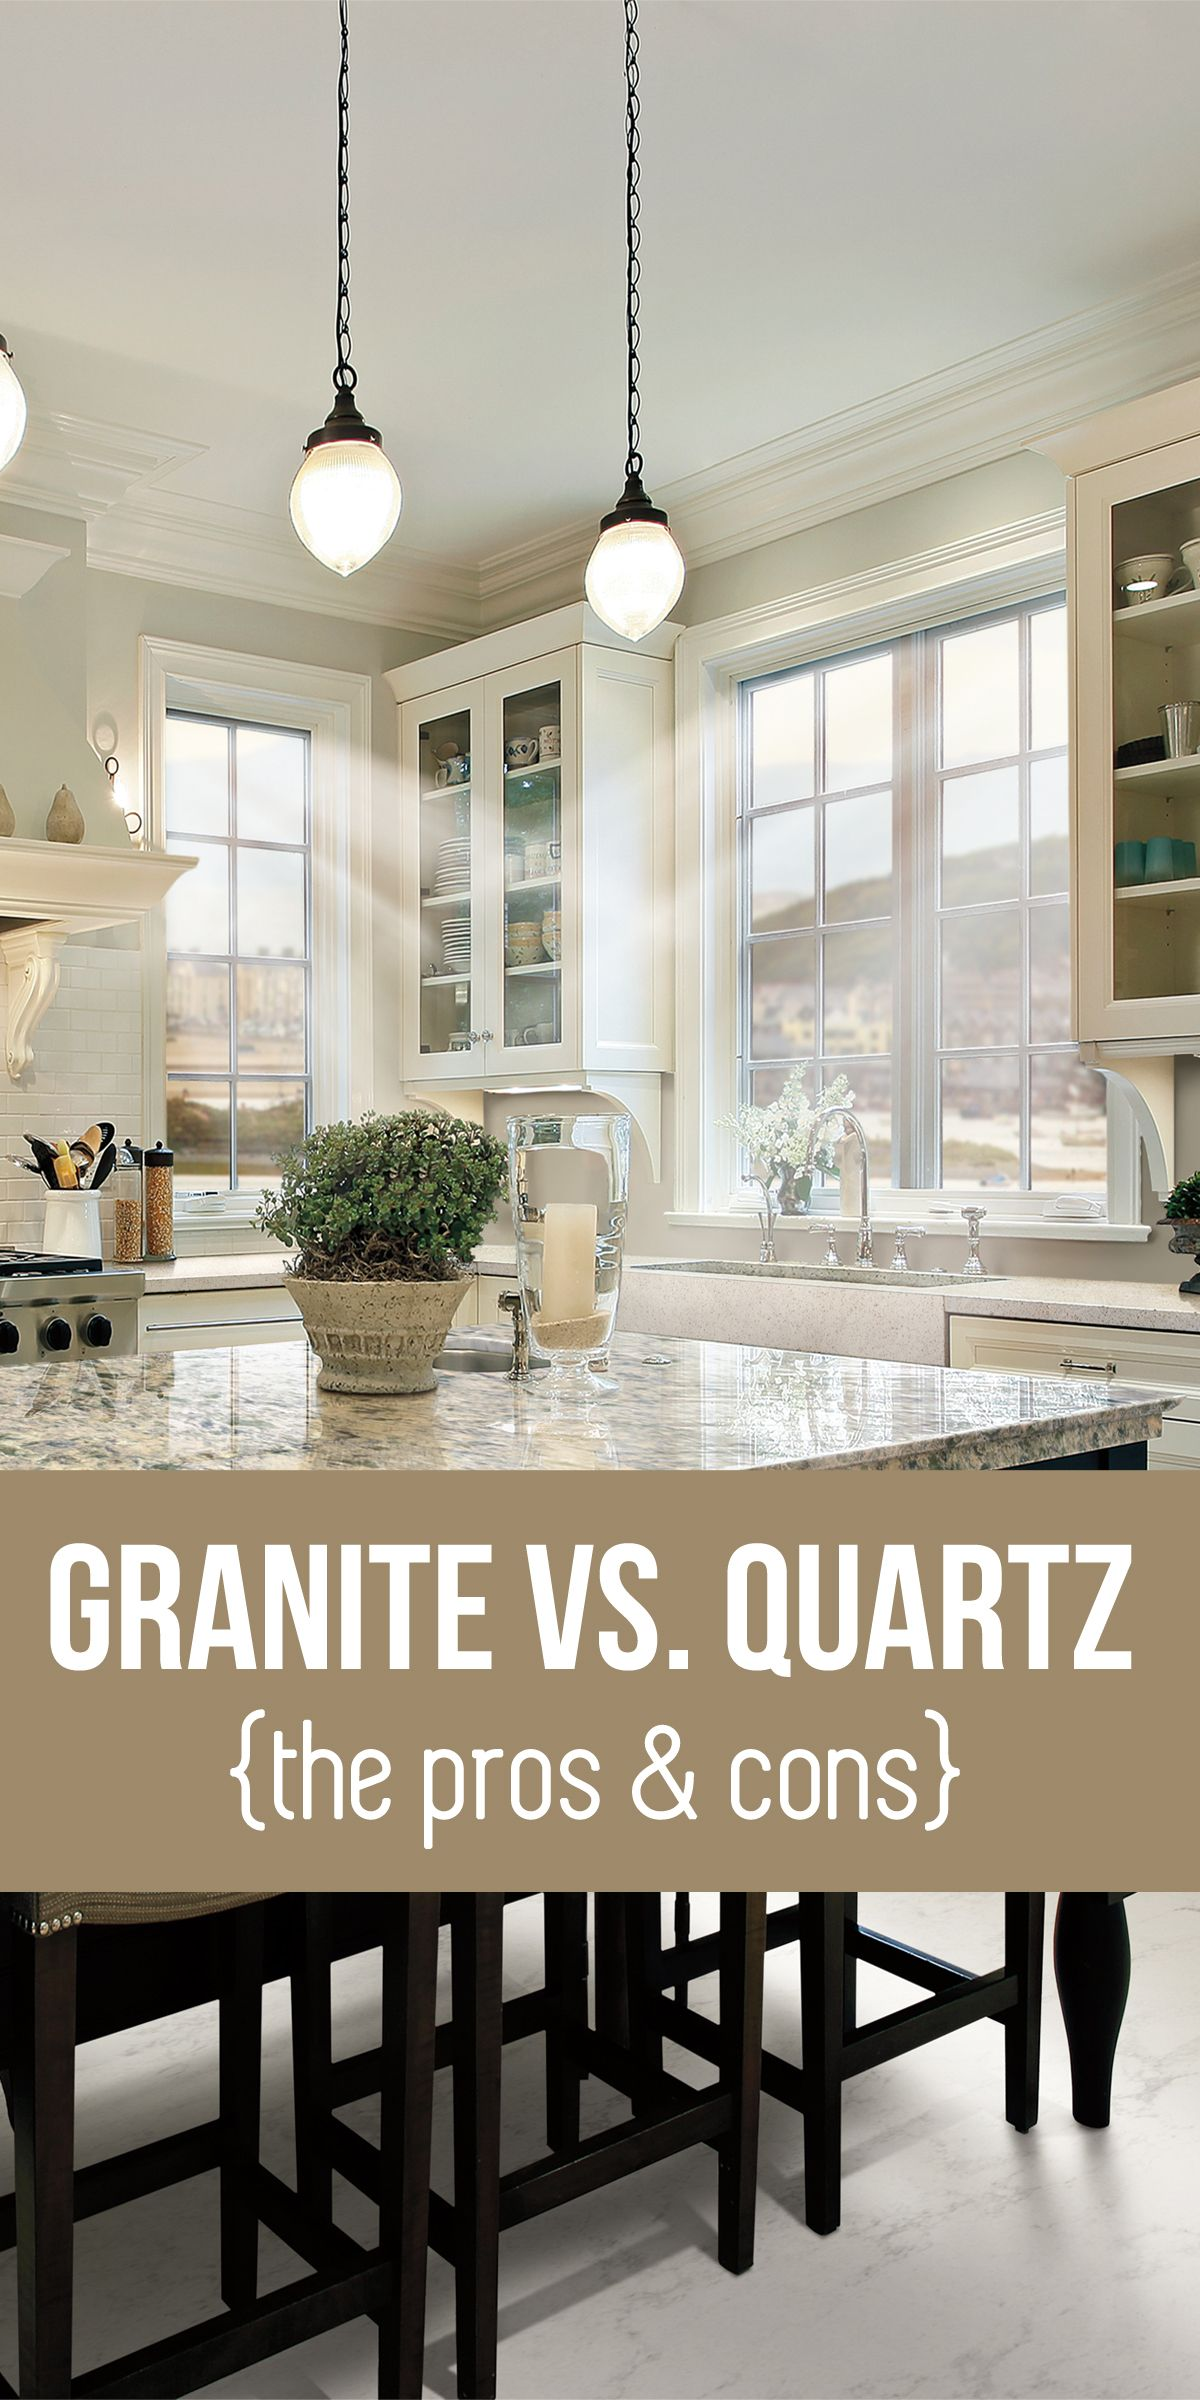 costco home countertops counters cost prices tile countertop price vs counter granite canada depot quartz quartzite